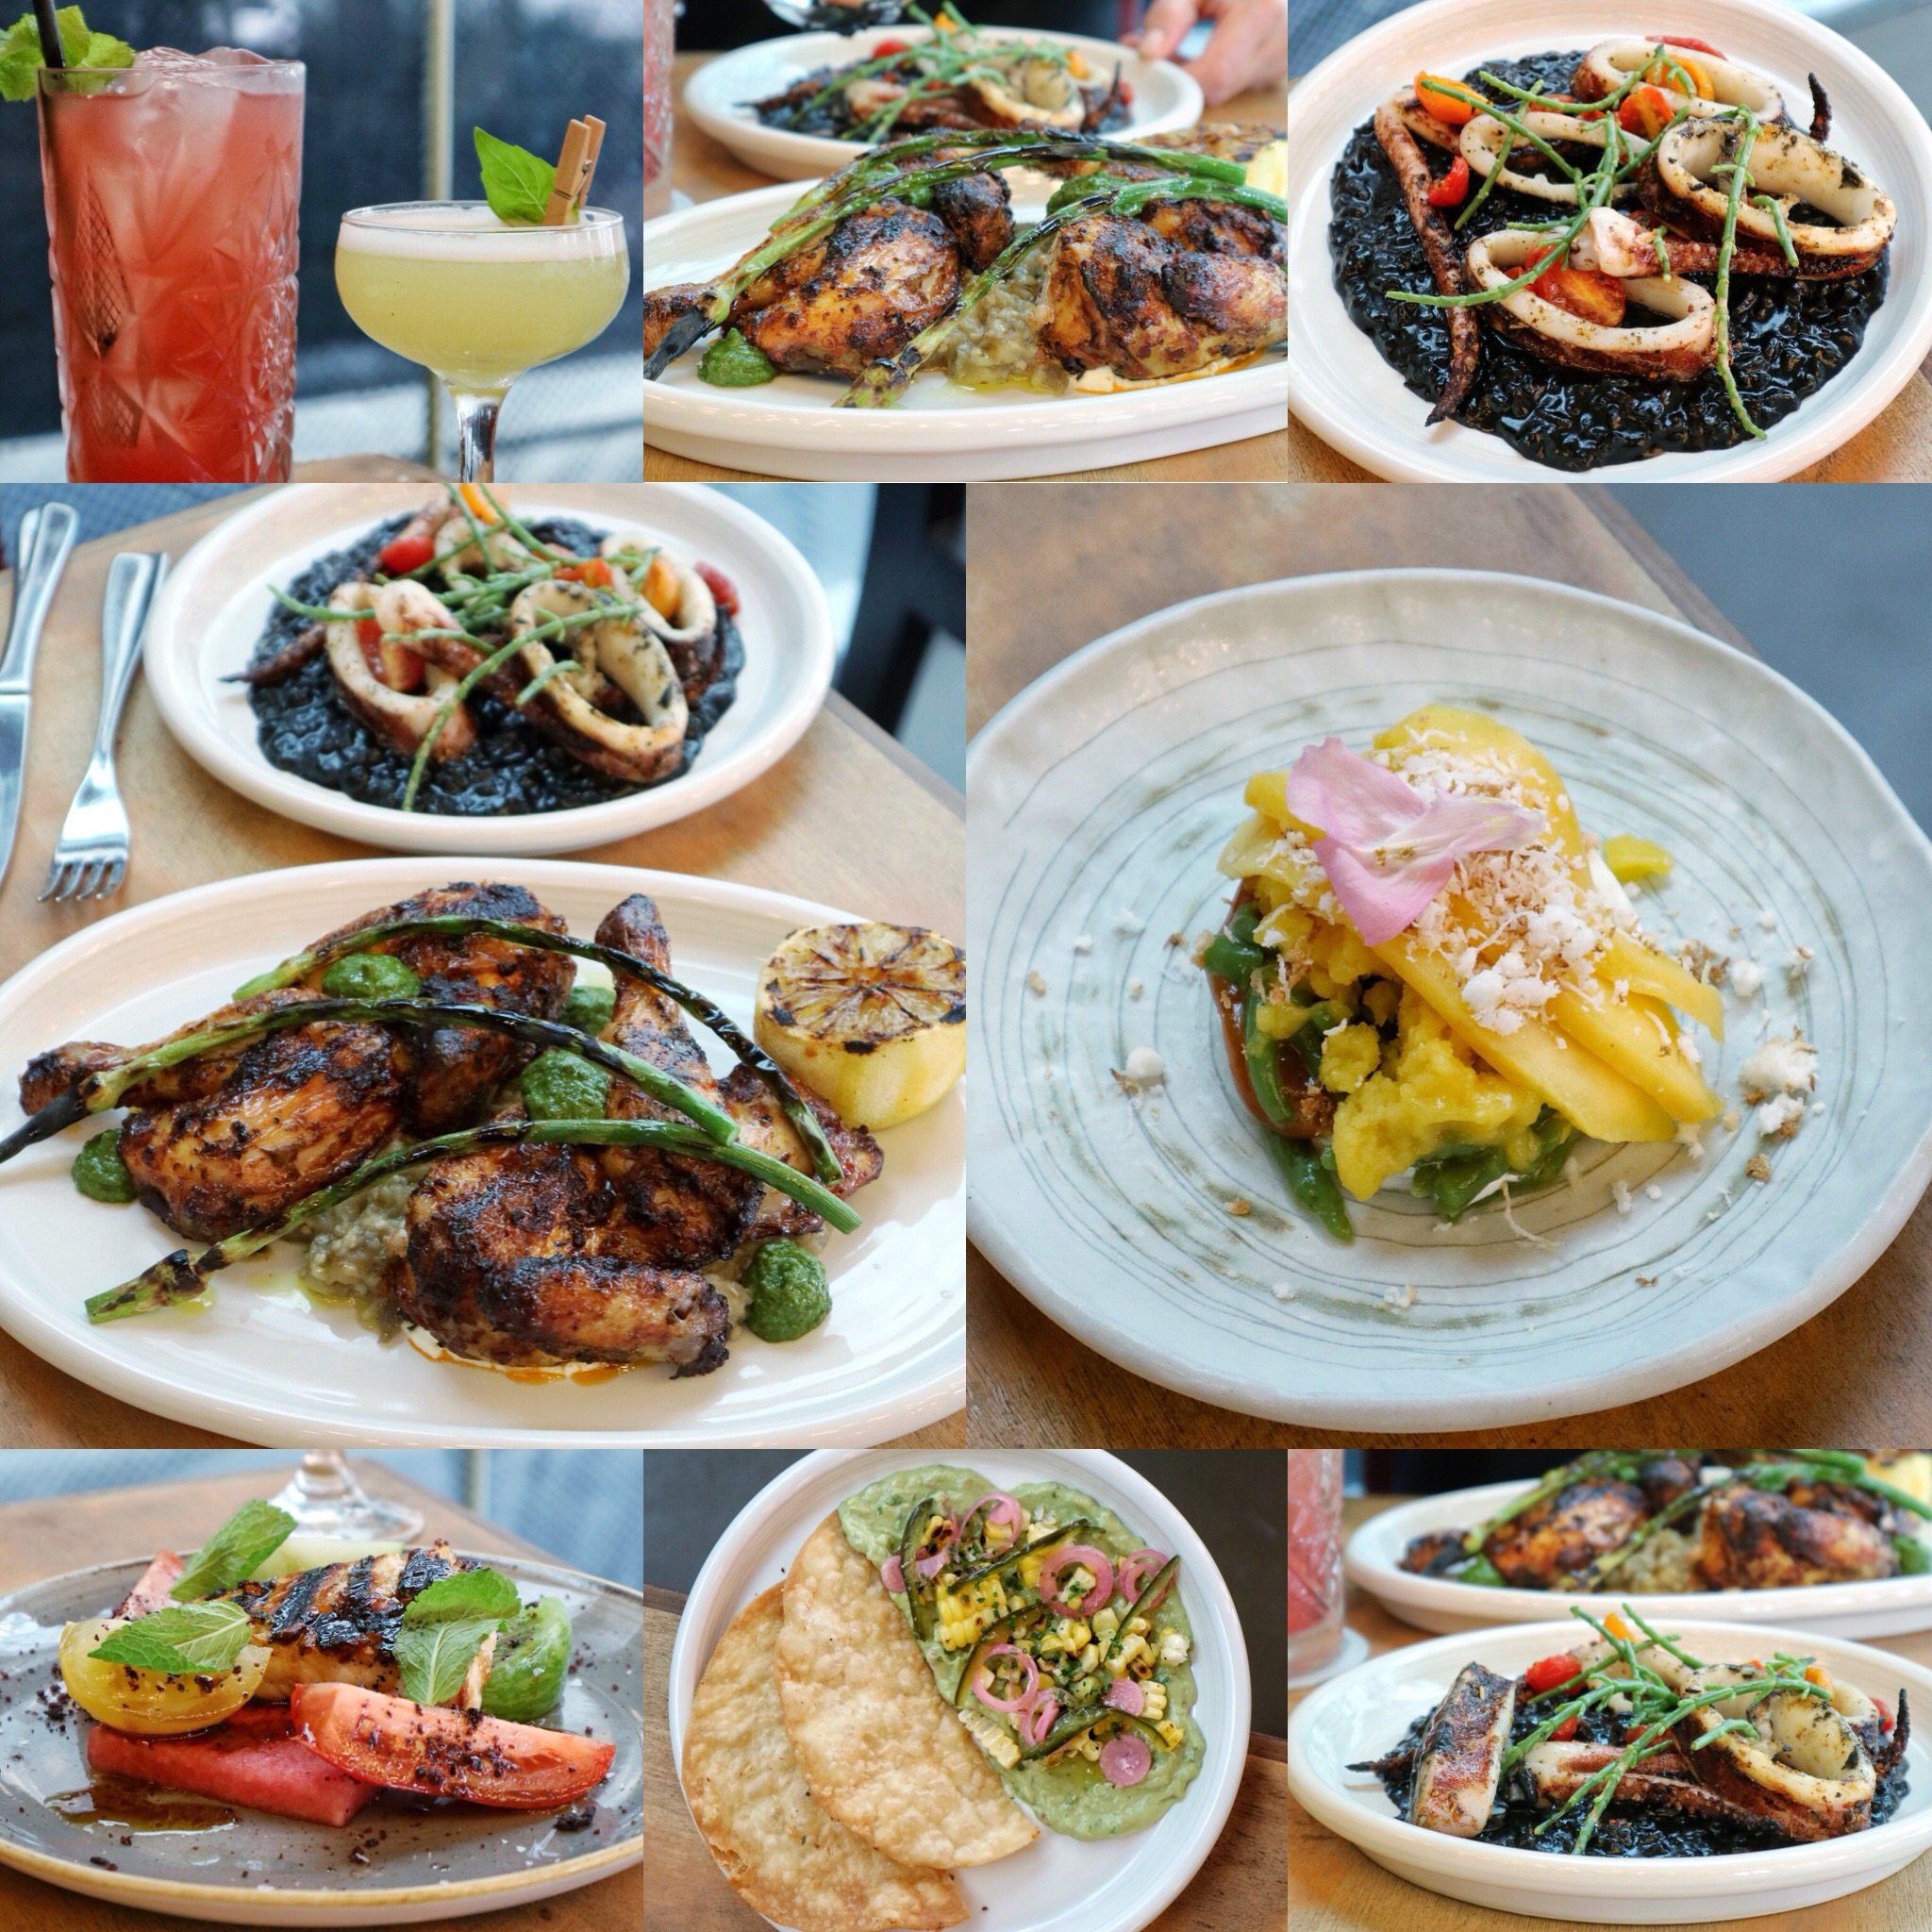 (NEW) The Botanic Restaurant: Conscious & Eco-Friendly Dining Concept Hits Raffles City